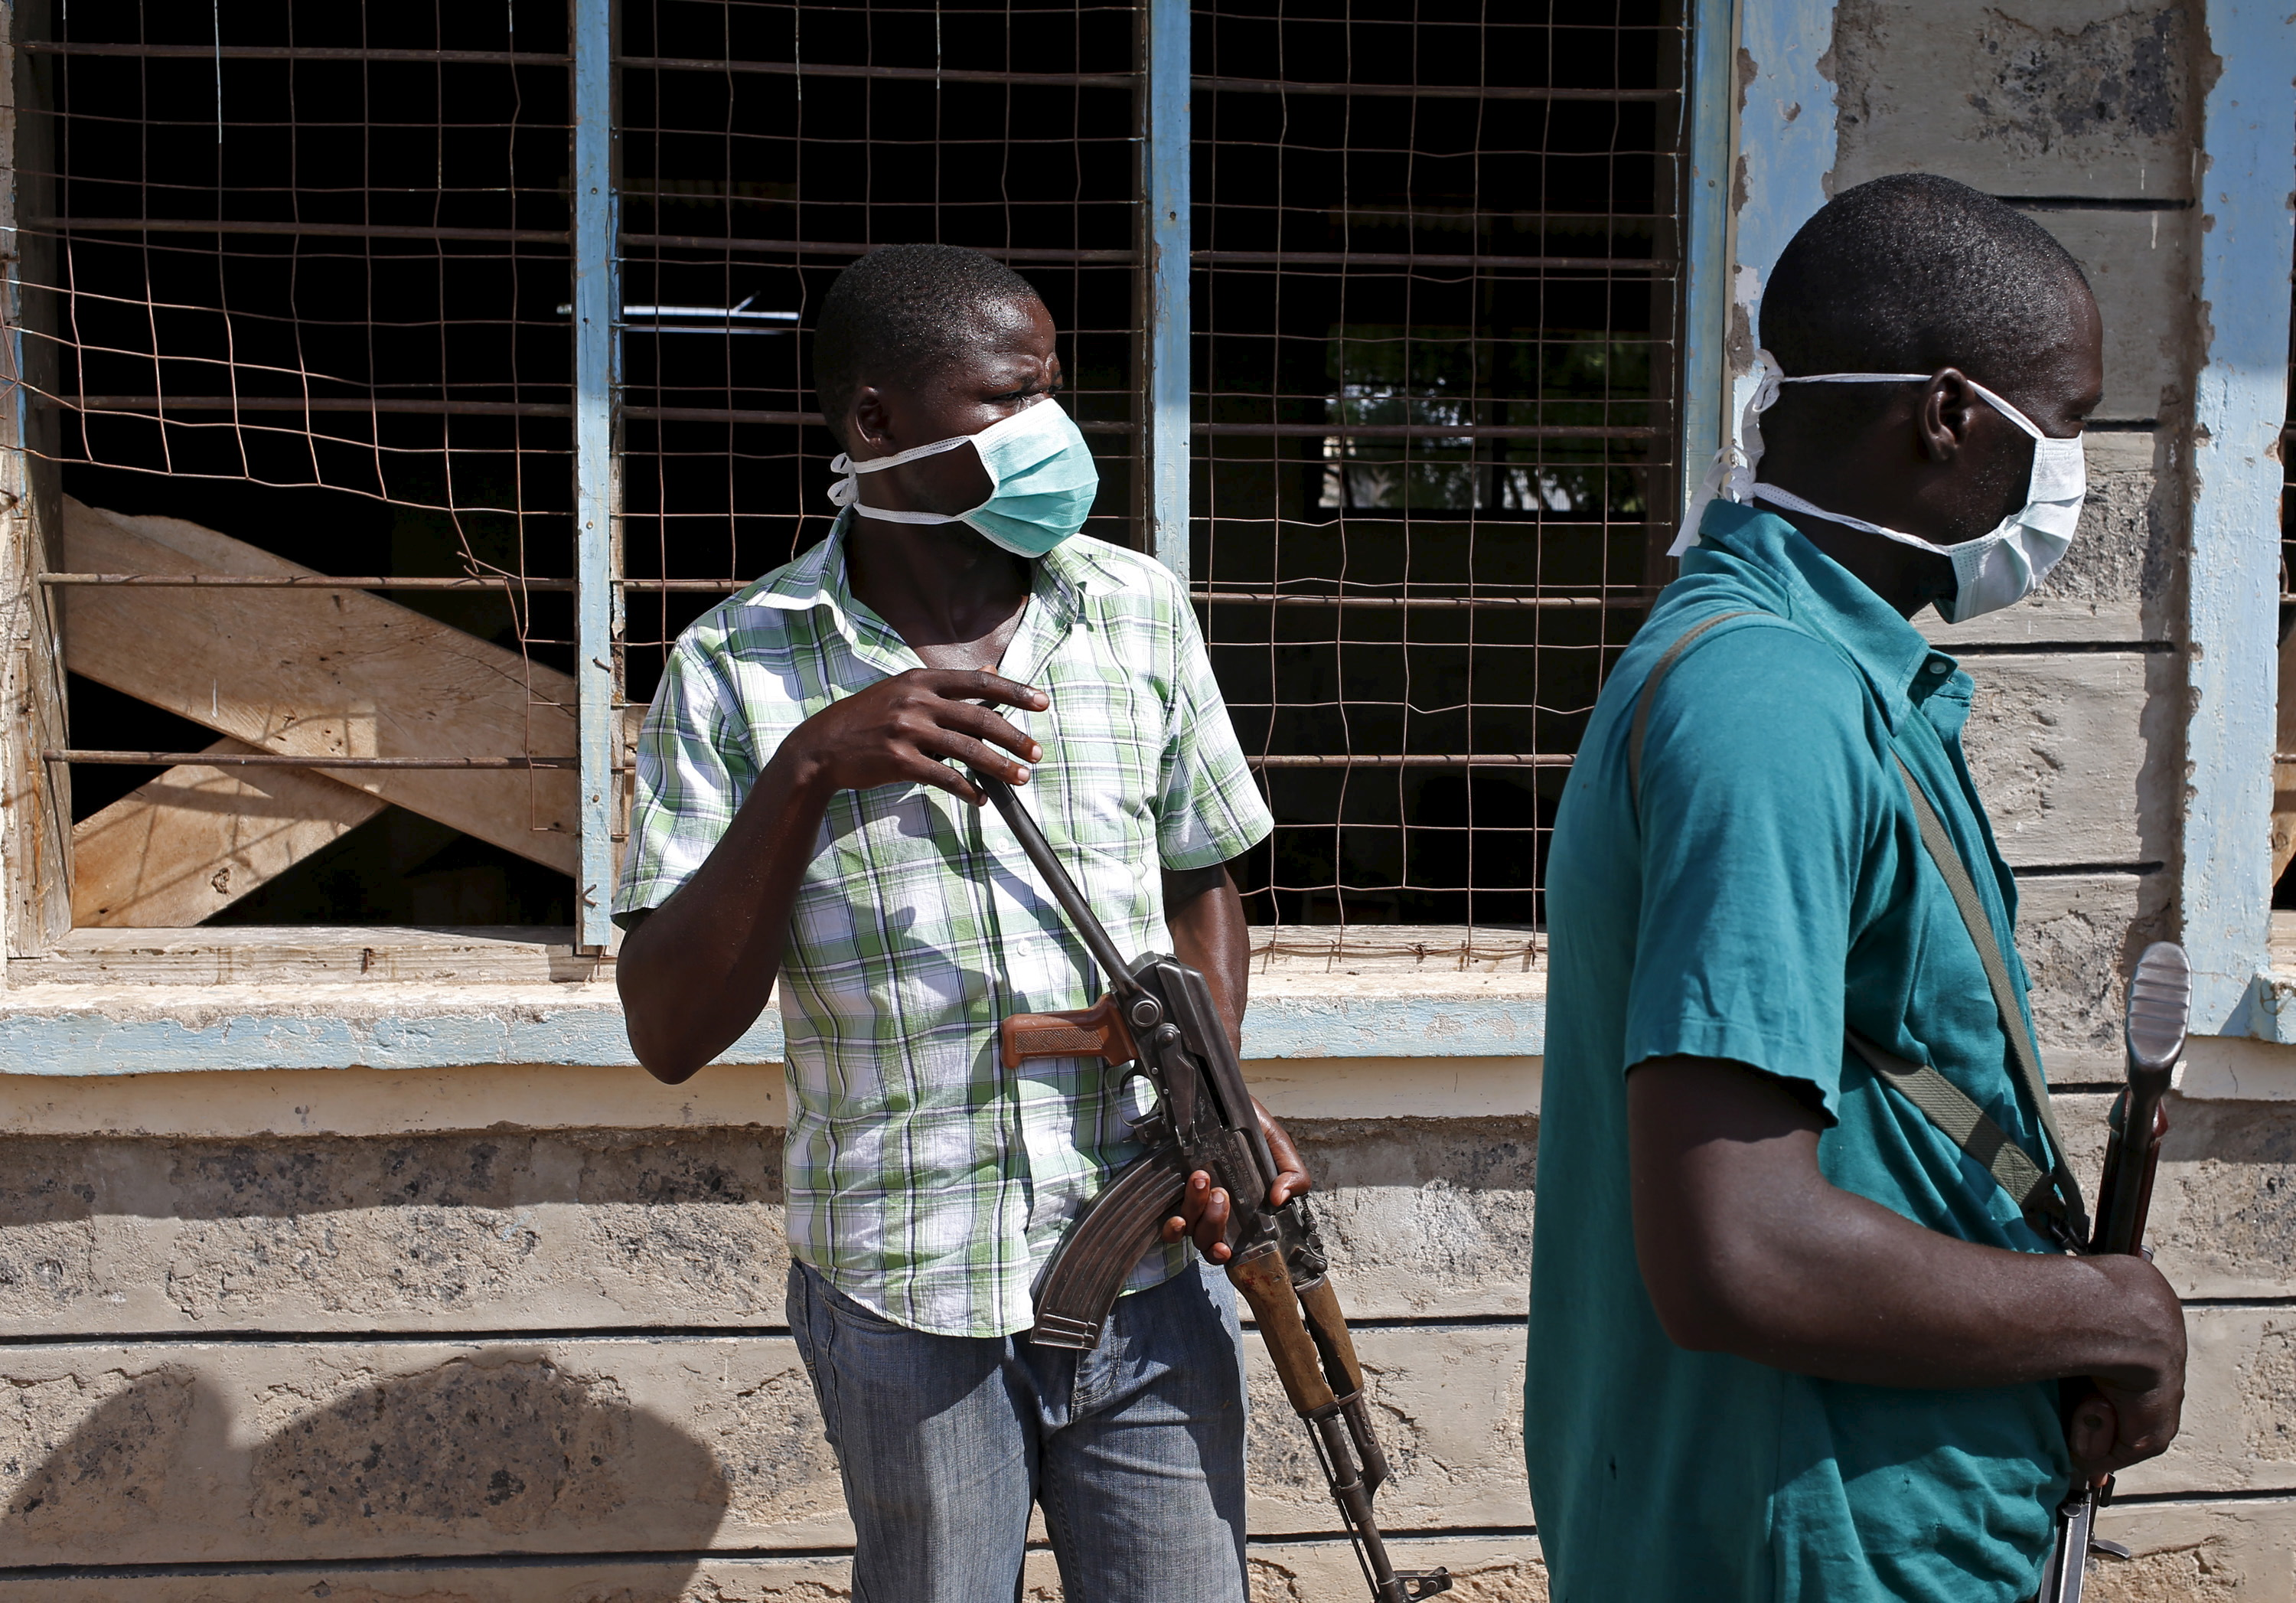 Plainclothes policemen stand in front of a crowd which came to see bodies of suspected Garissa University College attackers in a school compound in Garissa, Kenya on April 4, 2015.